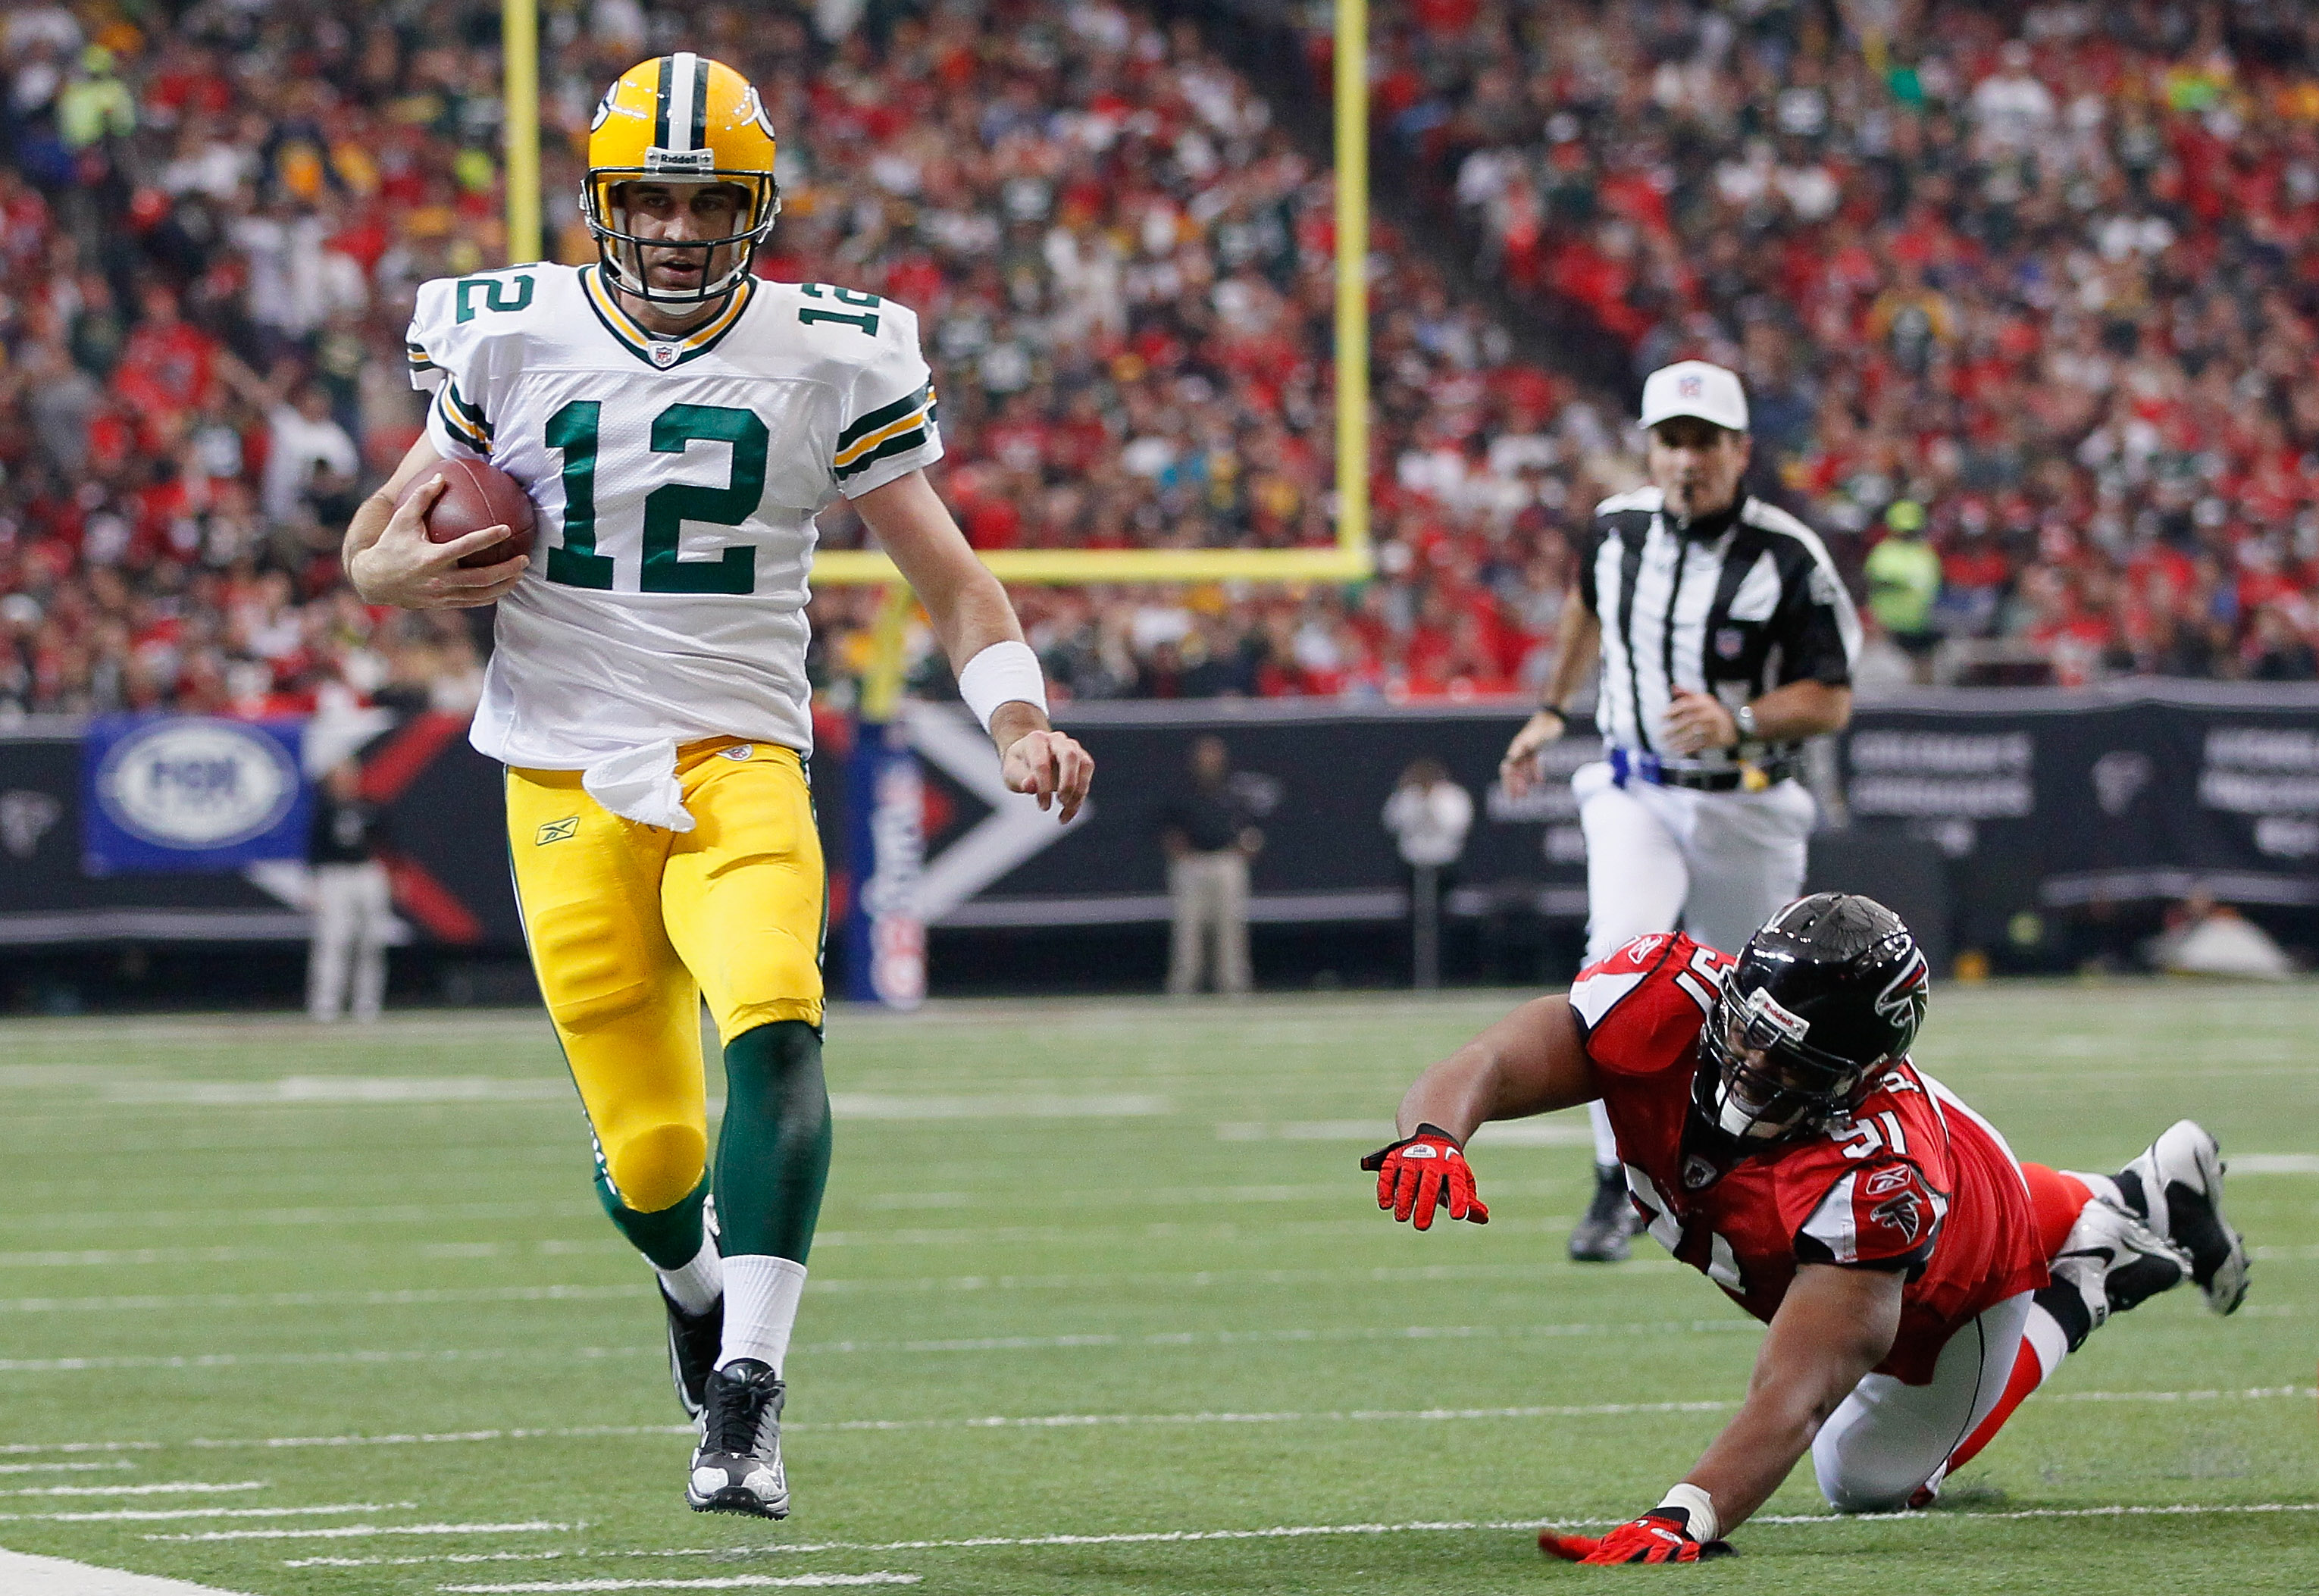 NFL Playoffs: Breaking Down Green Bay Packers vs. Atlanta Falcons, Round 2    Bleacher Report   Latest News, Videos and Highlights